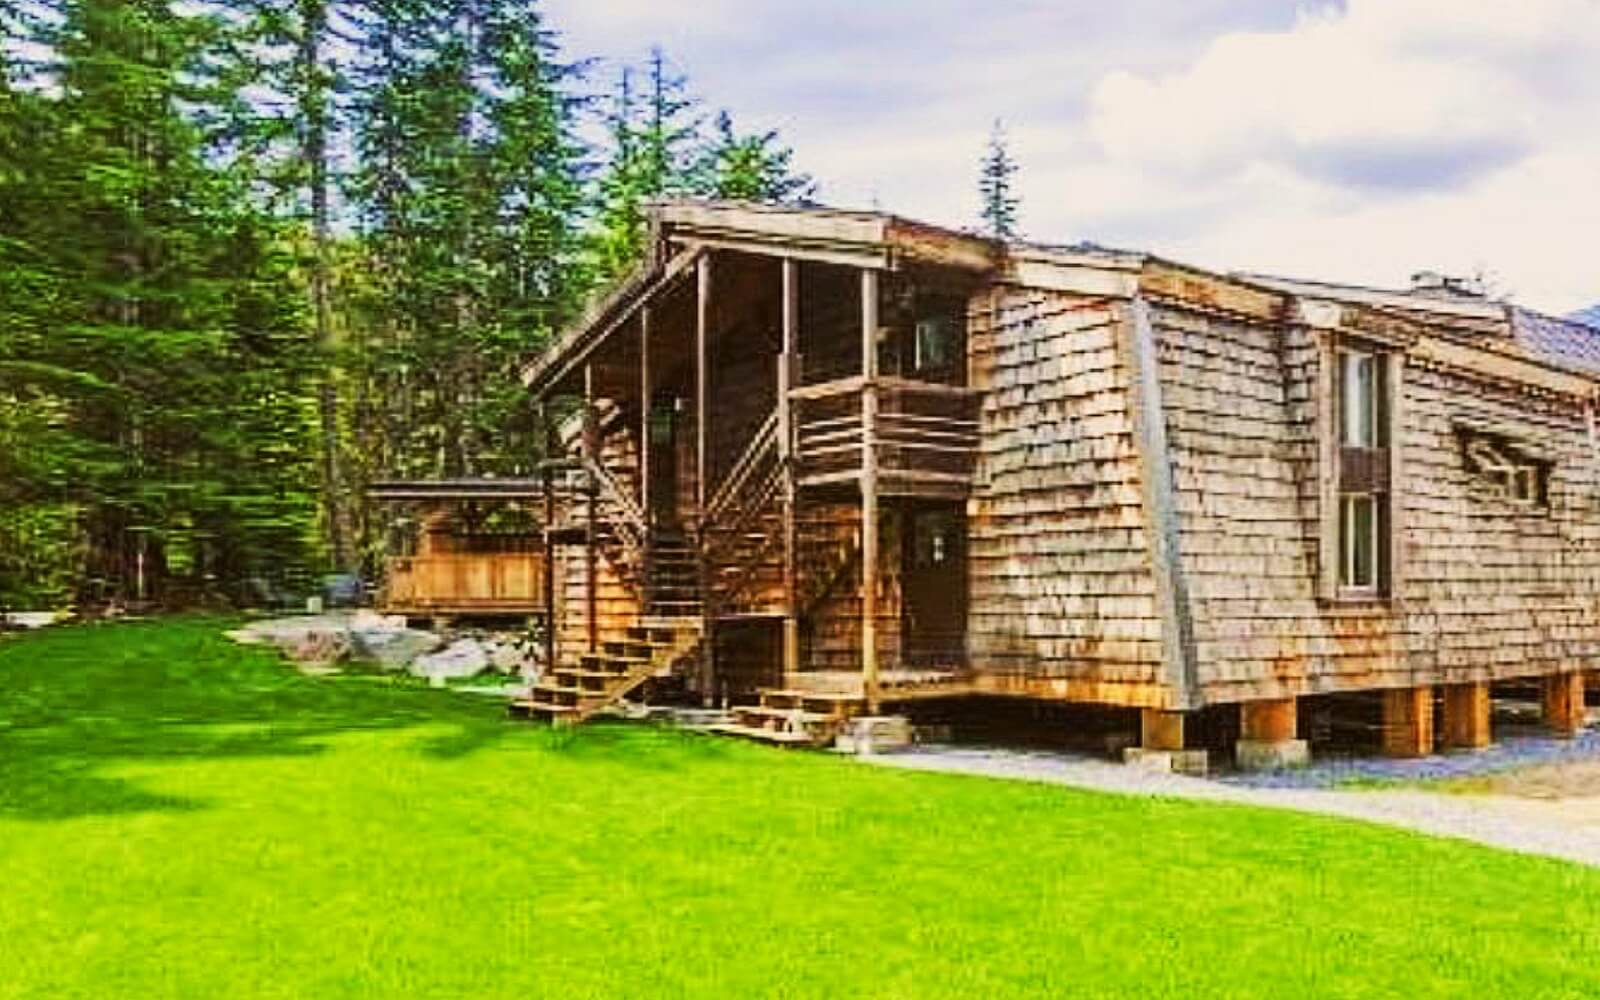 The rear view of the Whistler Lodge Hostel